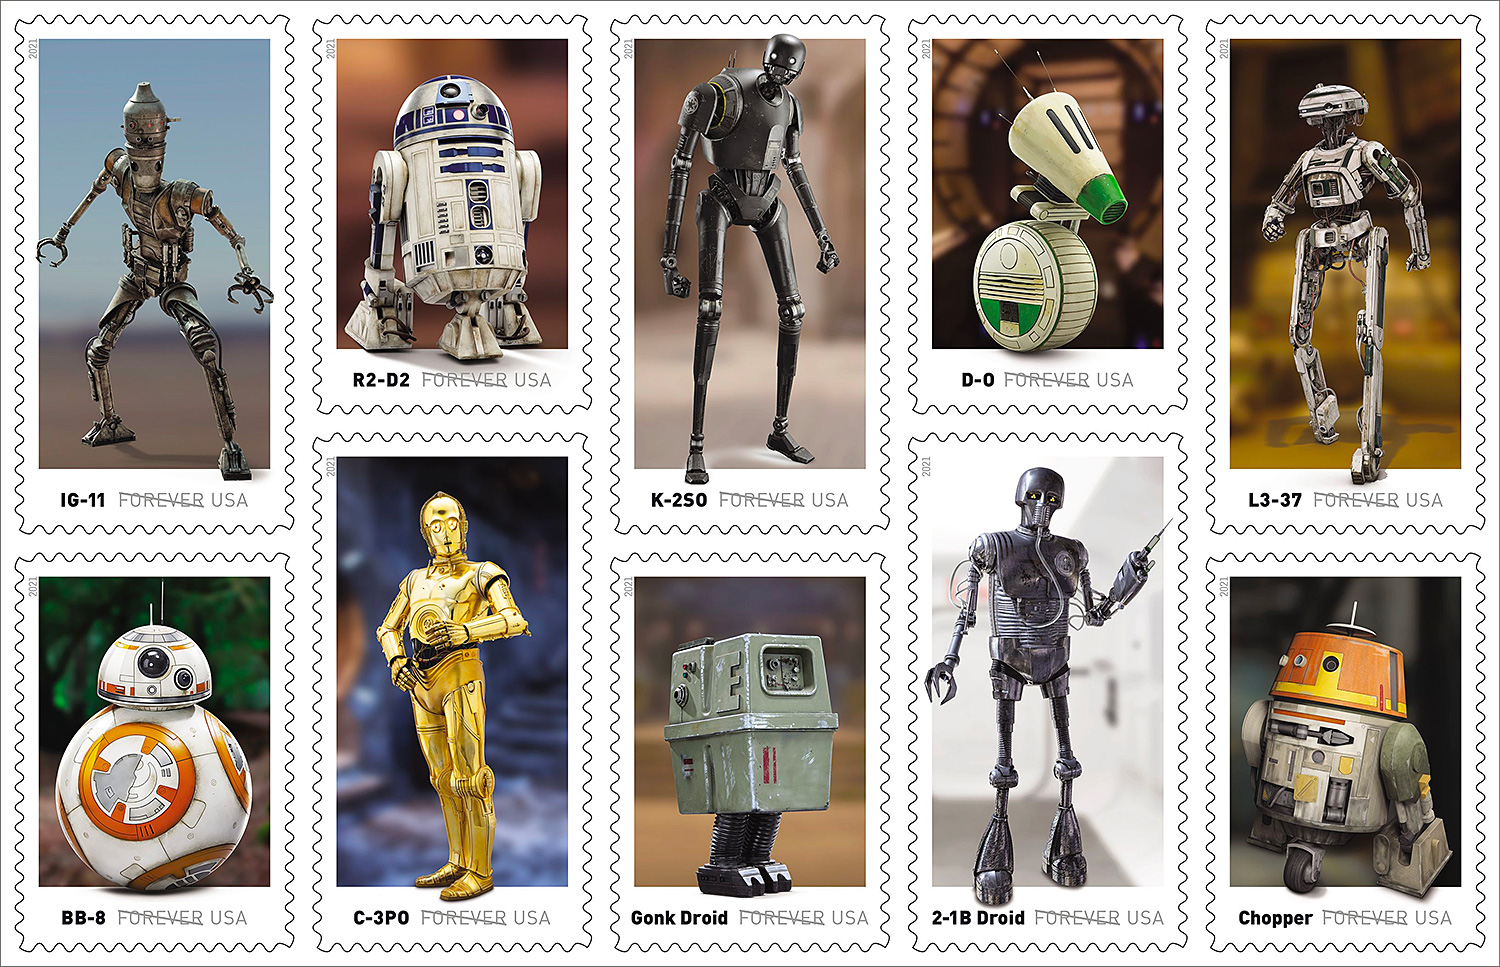 Send Terrestrial Mail with <i>Star Wars</i> Stamps at werd.com